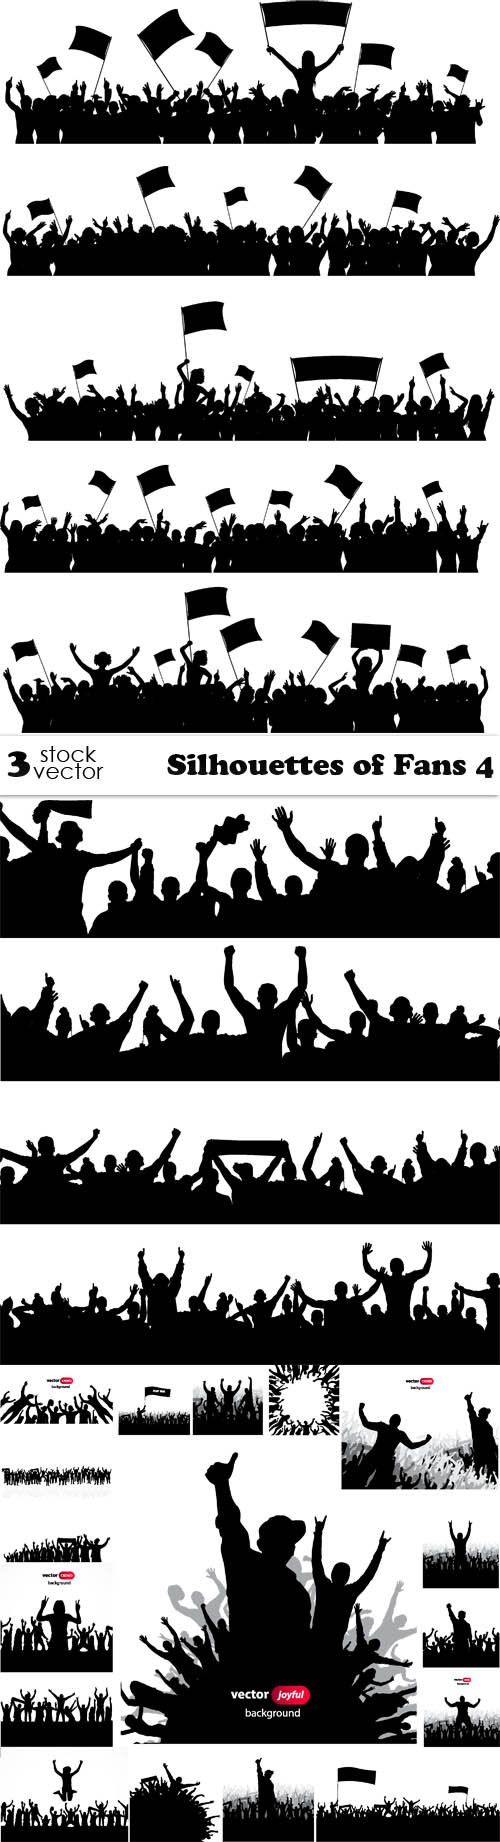 Vectors - Silhouettes of Fans 4